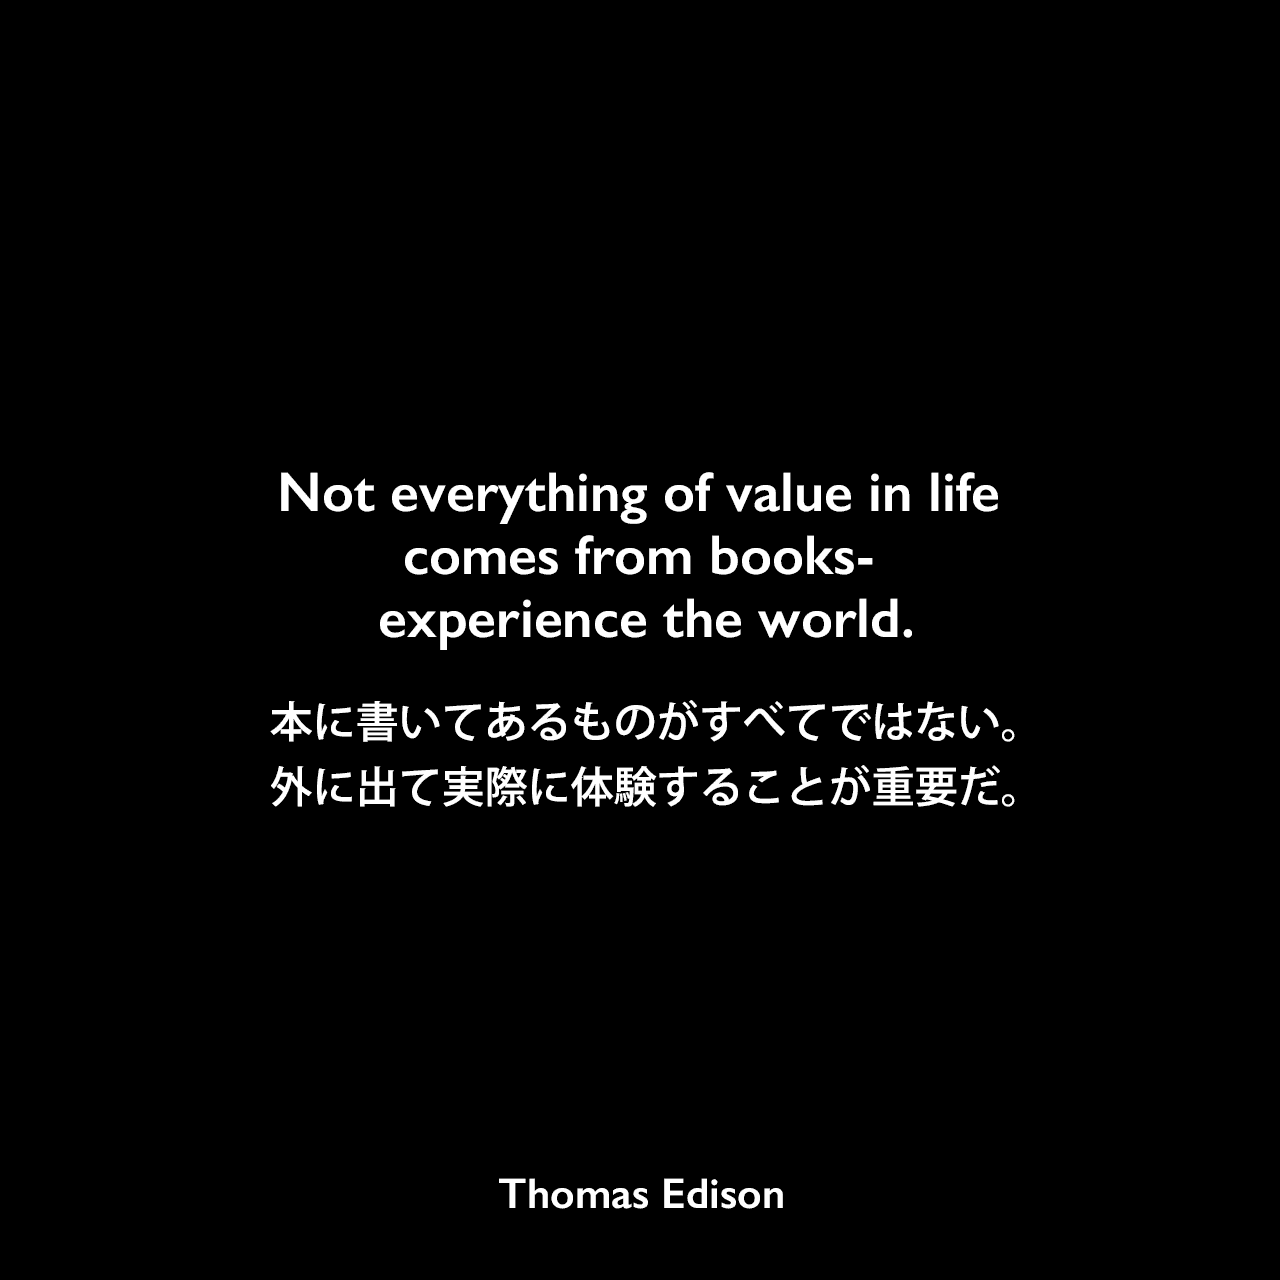 Not everything of value in life comes from books- experience the world.本に書いてあるものがすべてではない。外に出て実際に体験することが重要だ。Thomas Edison